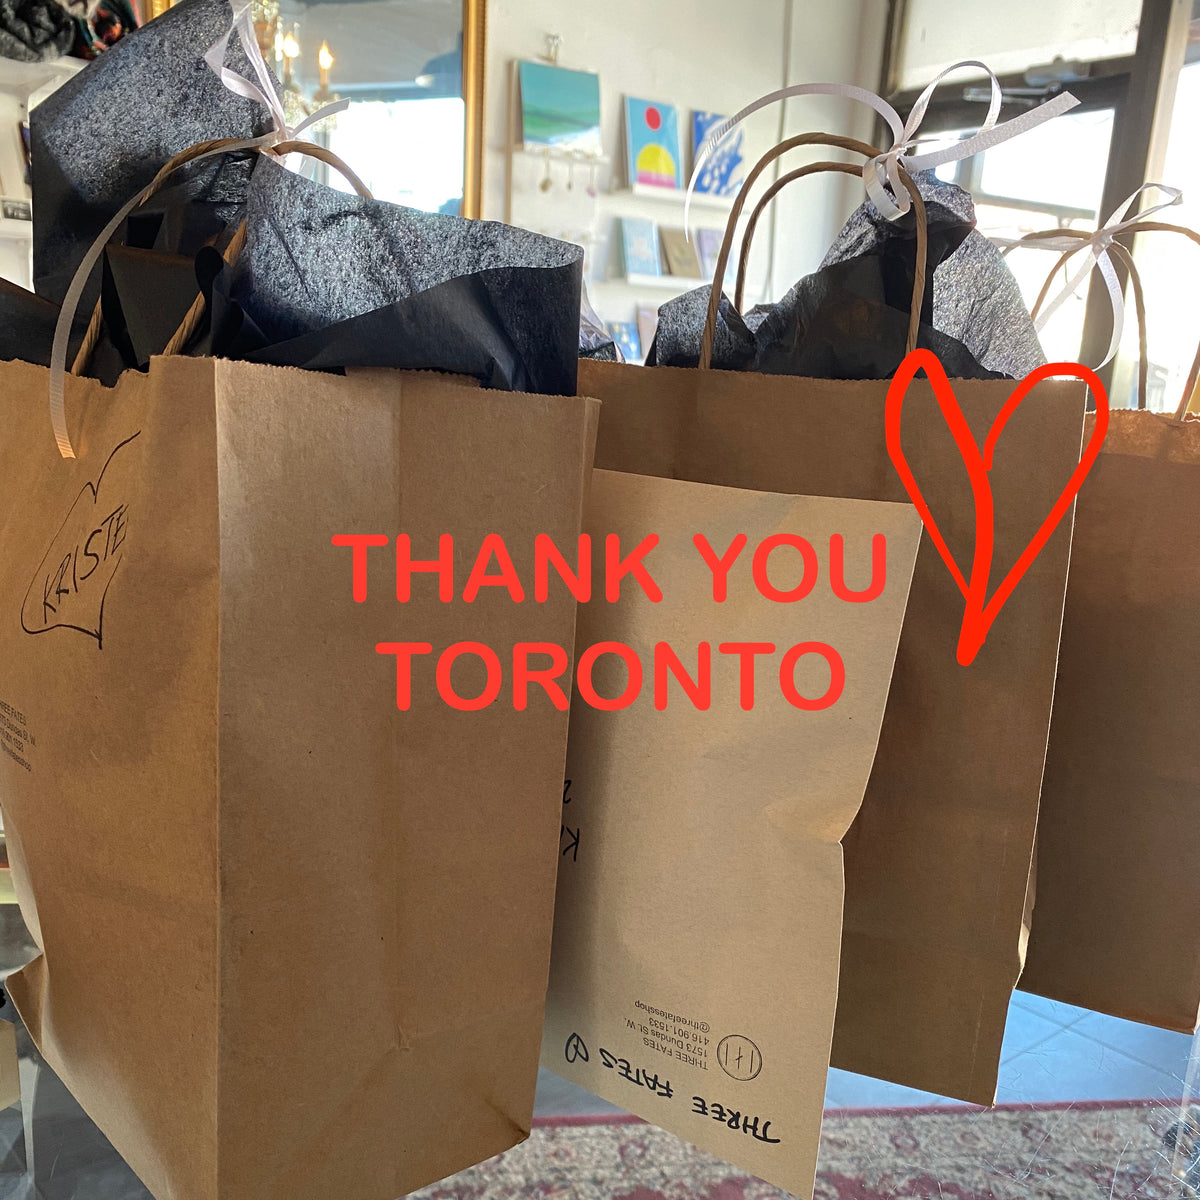 Thank you for your support Toronto